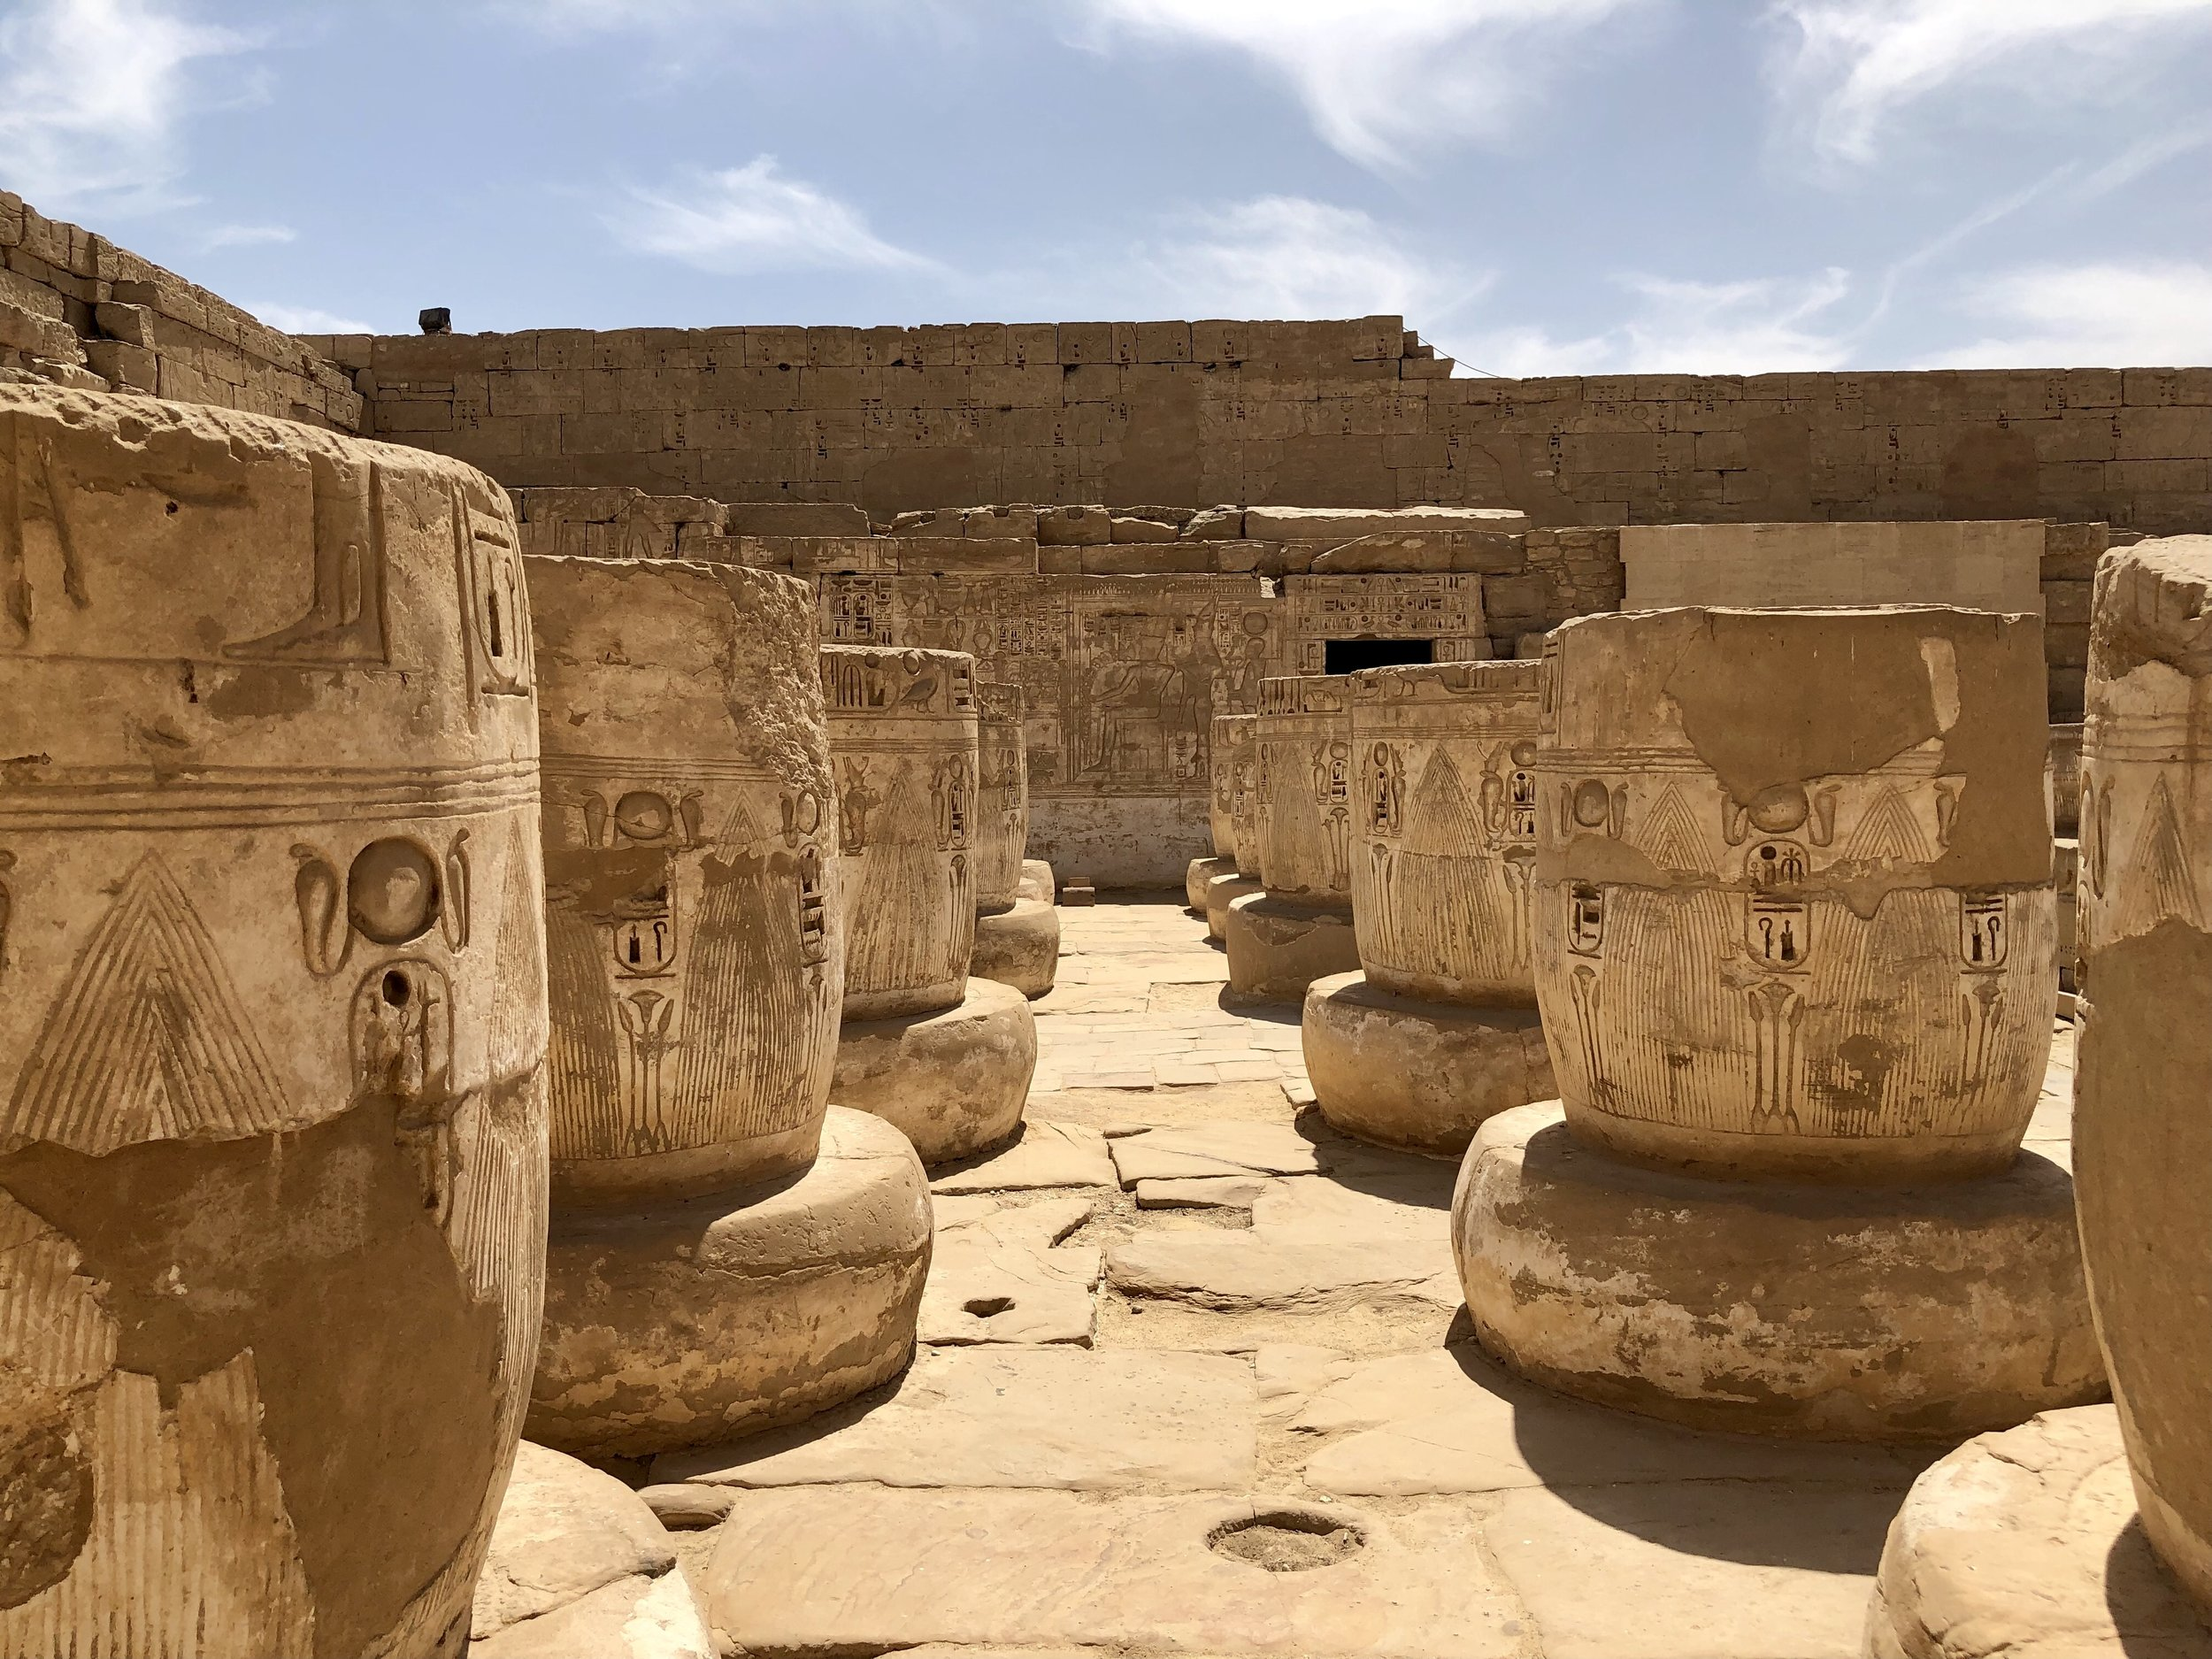 Out back is the Great Hypostyle Hall, modeled after Karnak's — again Ramesses III gained inspiration from his father, Ramesses II